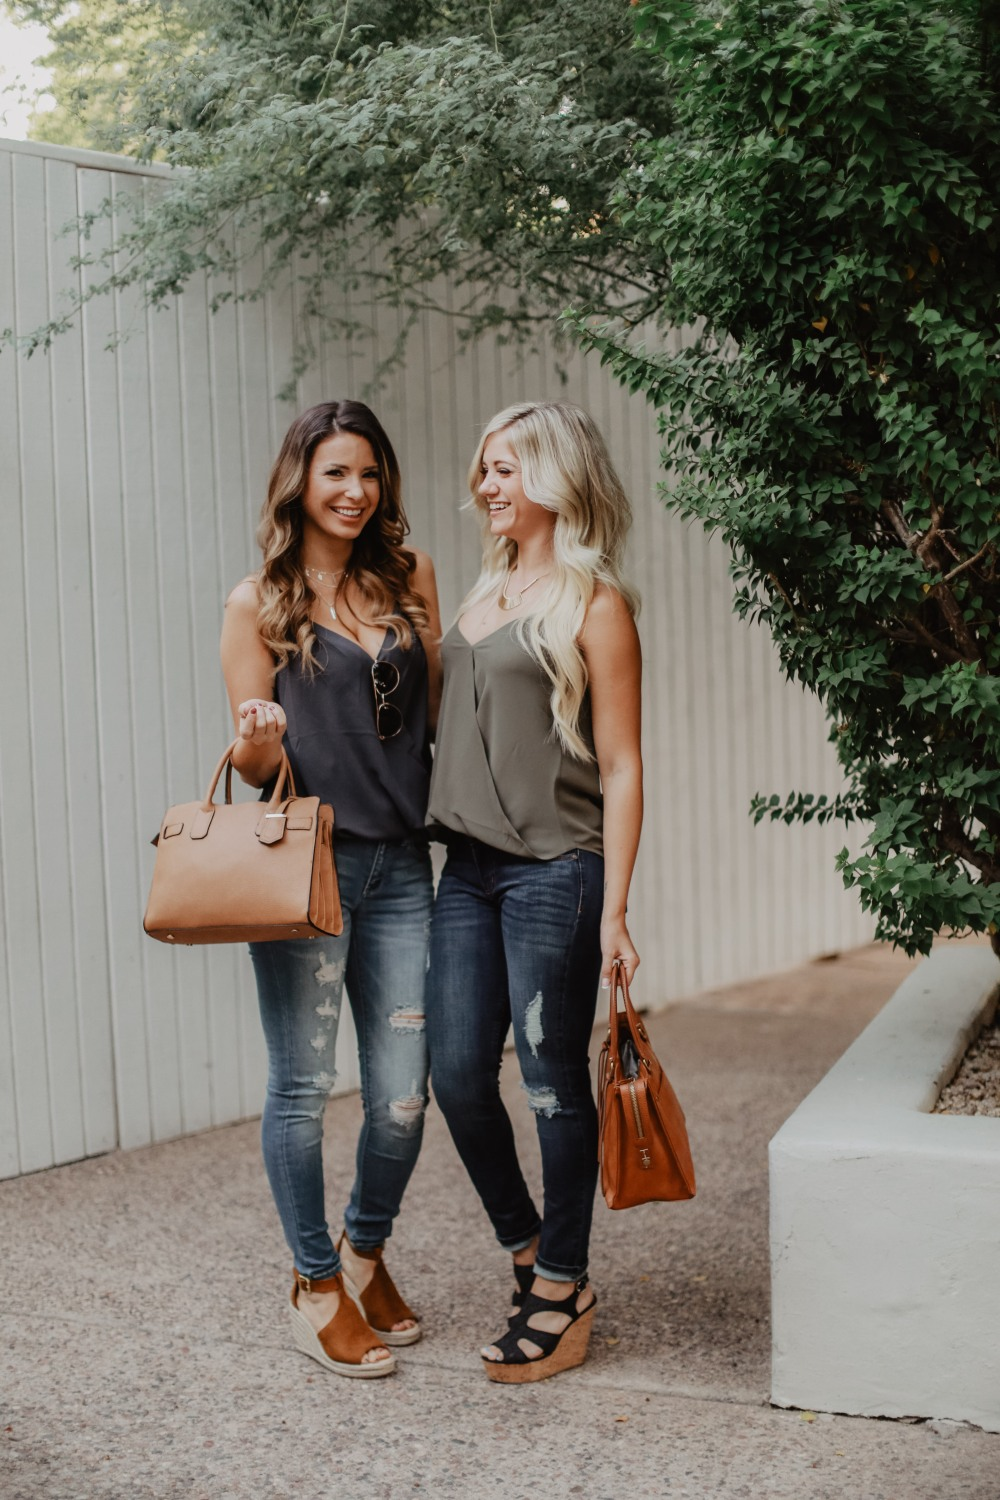 The perfect fall transitional outfits! Sleeveless tops (cuz it's still warm out) in gorgeous FALL COLORS with cute jeans and wedges! Just add a cardigan when it cools off.